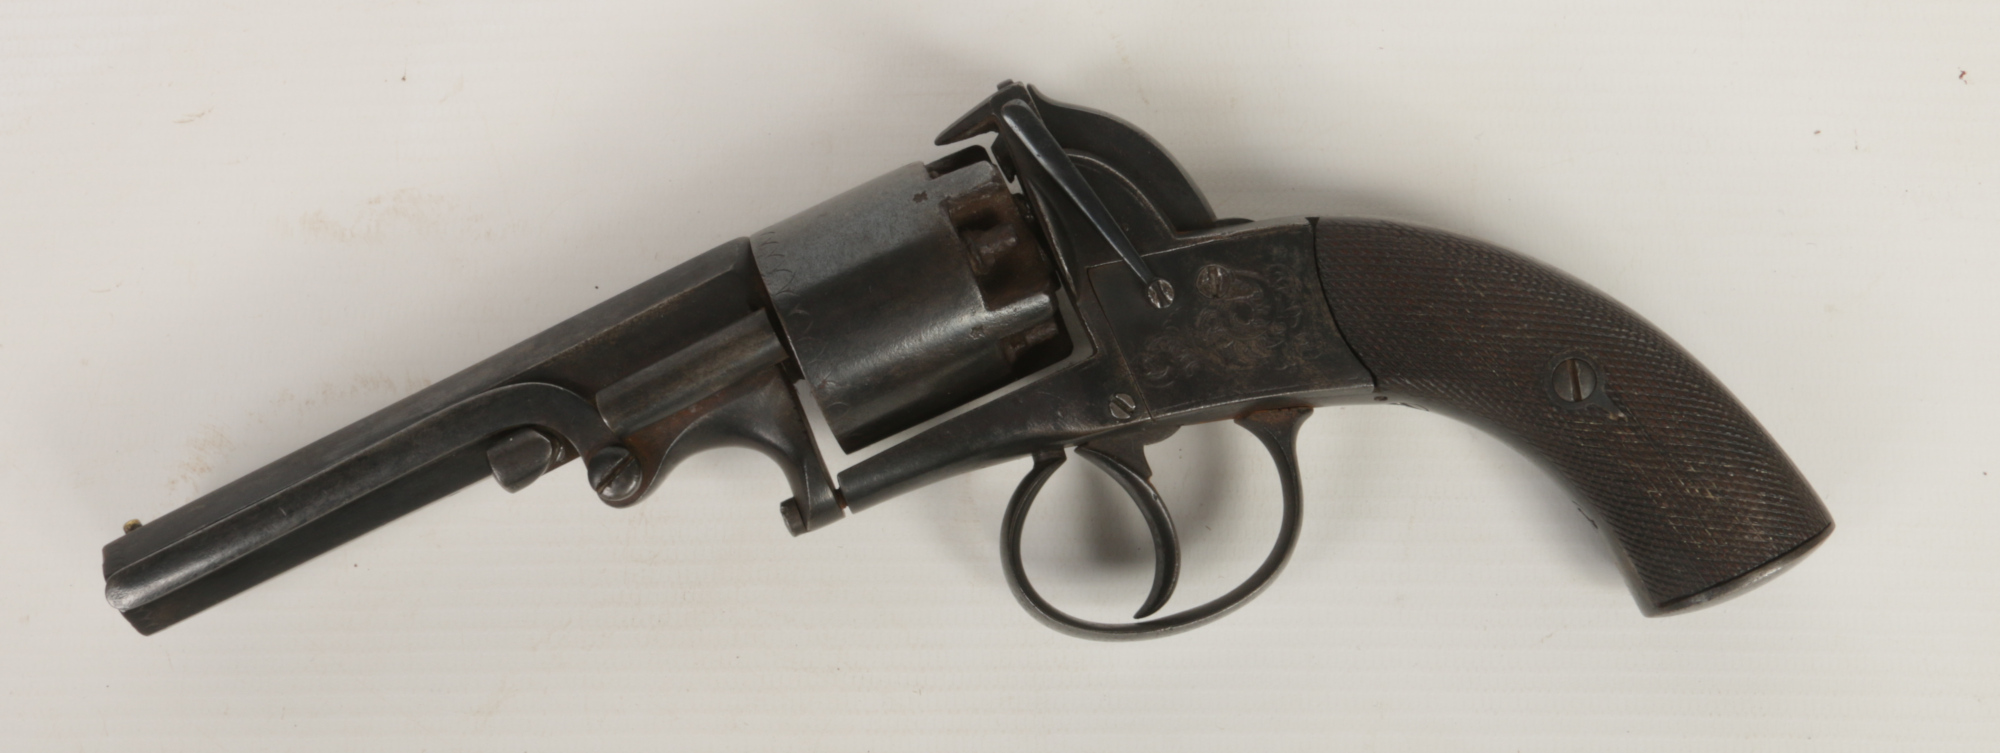 Lot 273 - A five shot service revolver of Bentley type. With octagonal barrel and knurled scales c.1880.